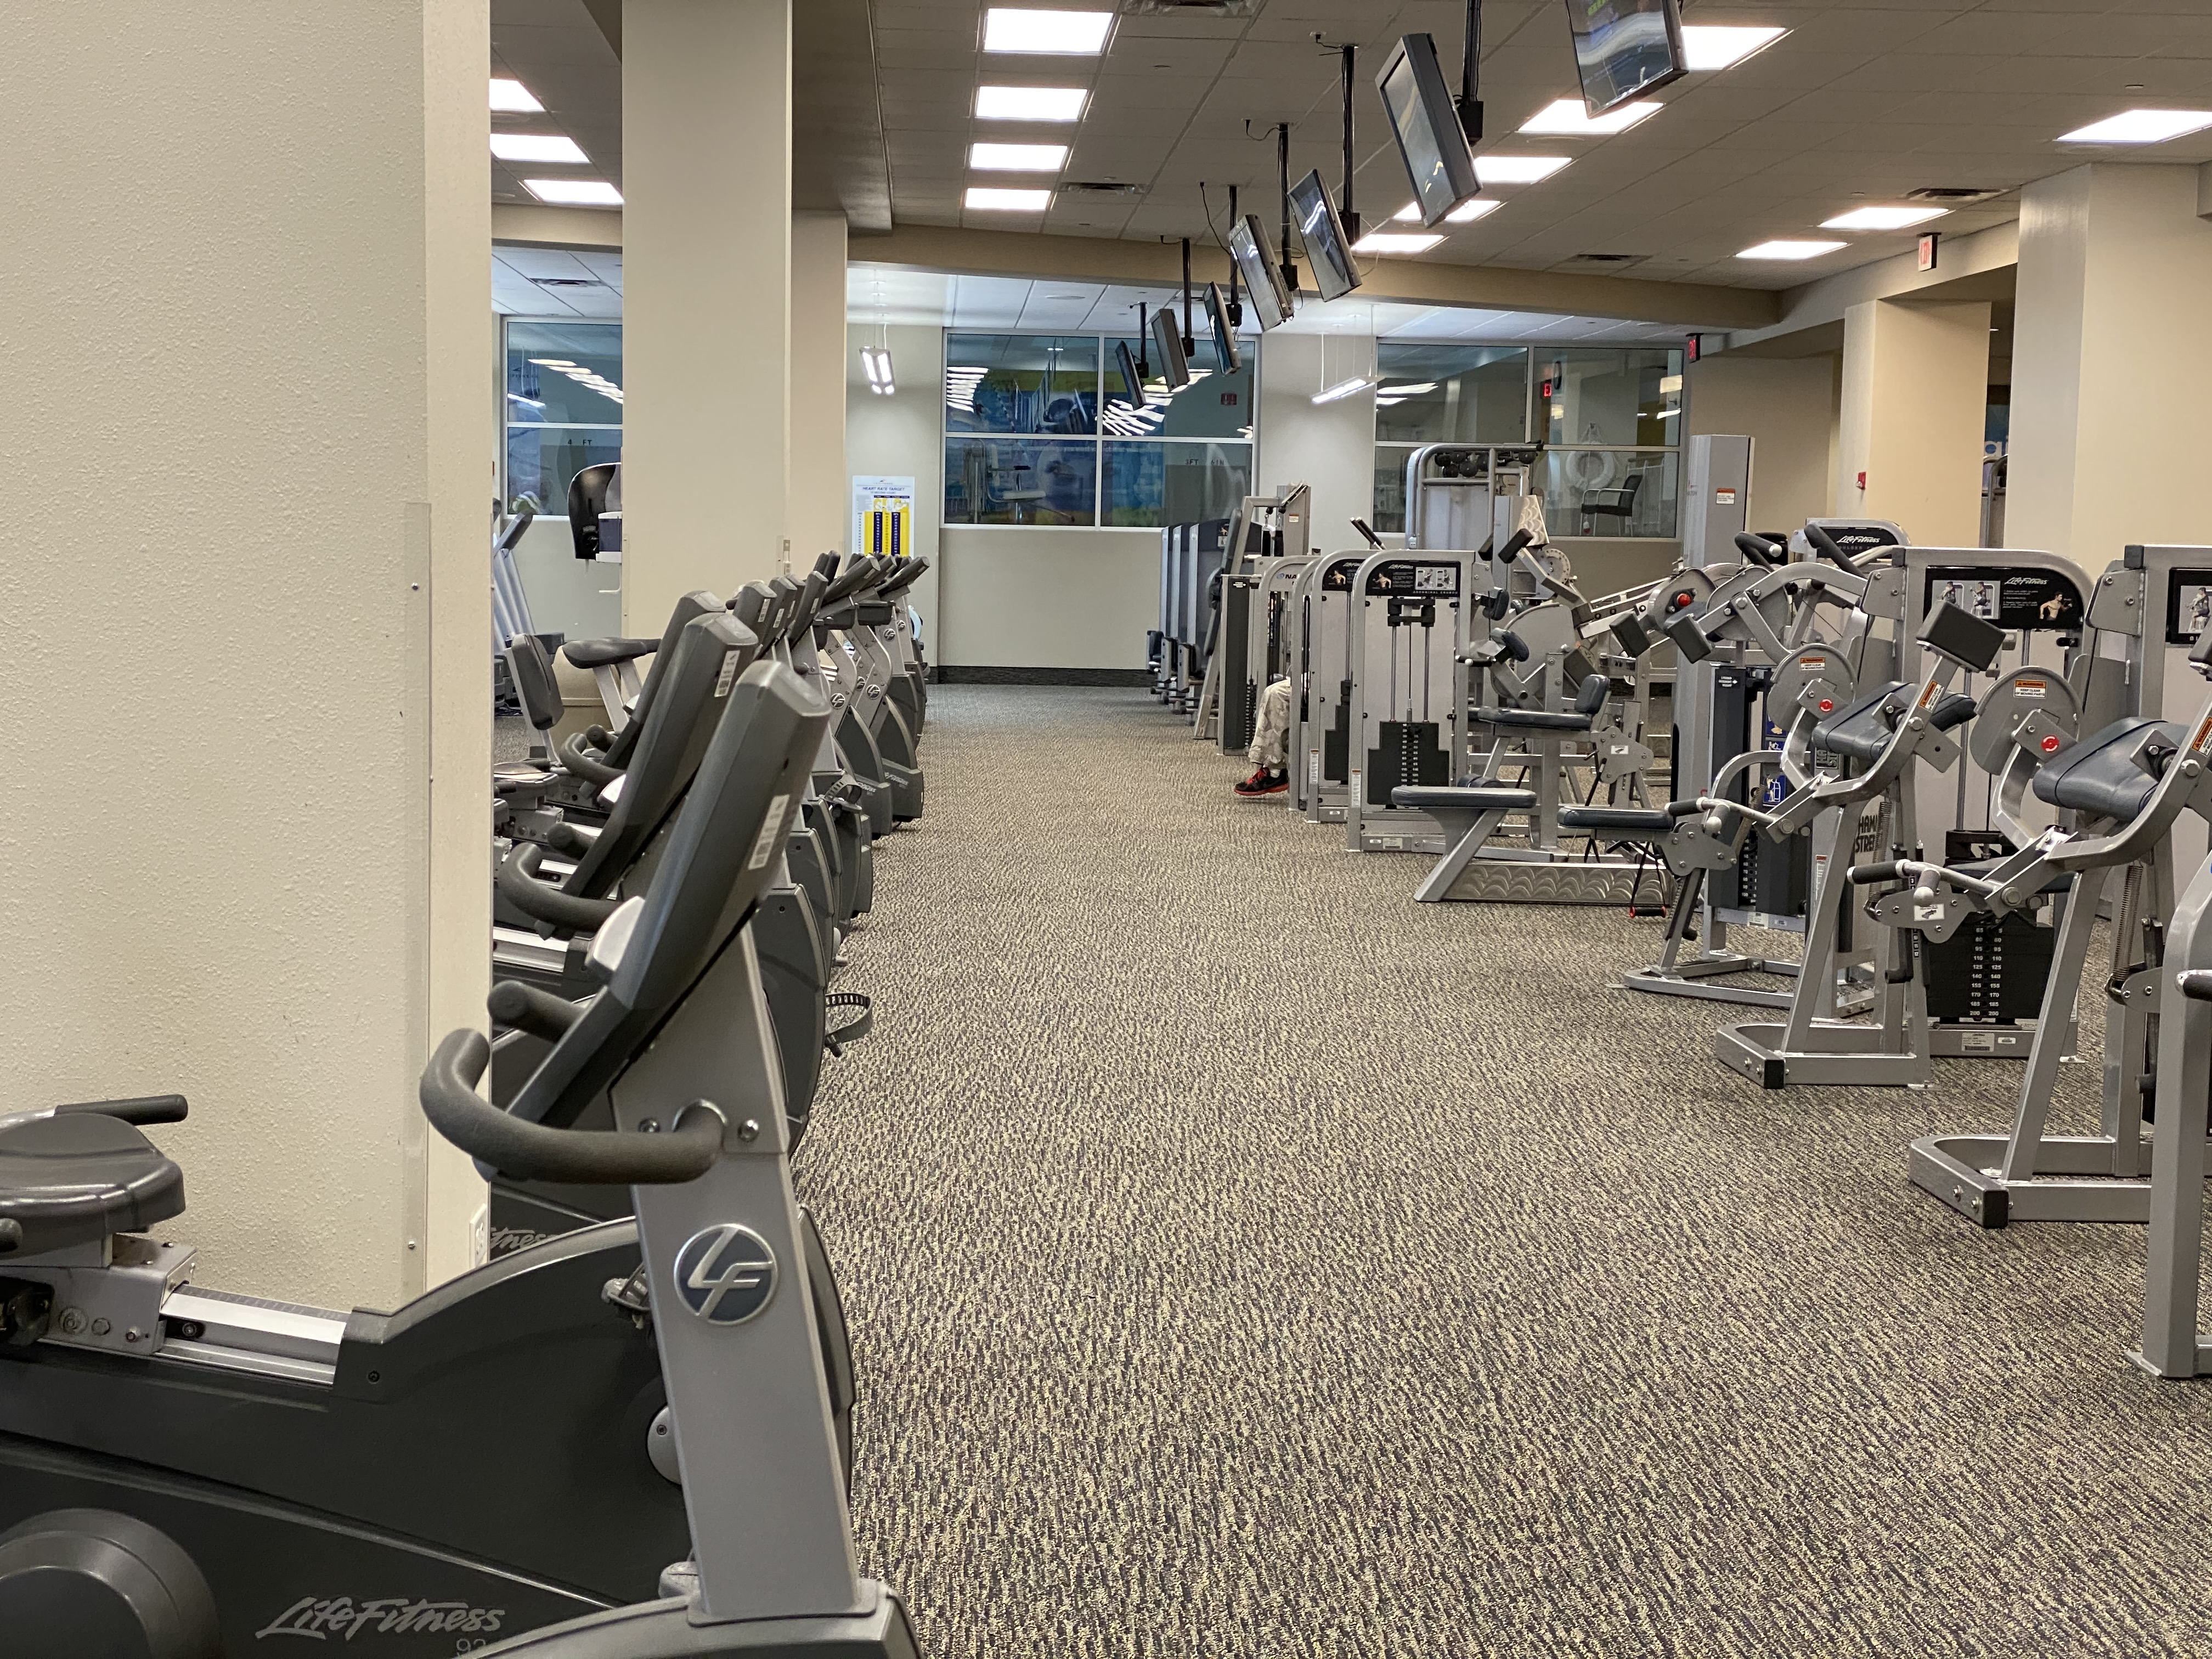 Fitness centers in Chicago are taking different approaches to the coronavirus outbreak.